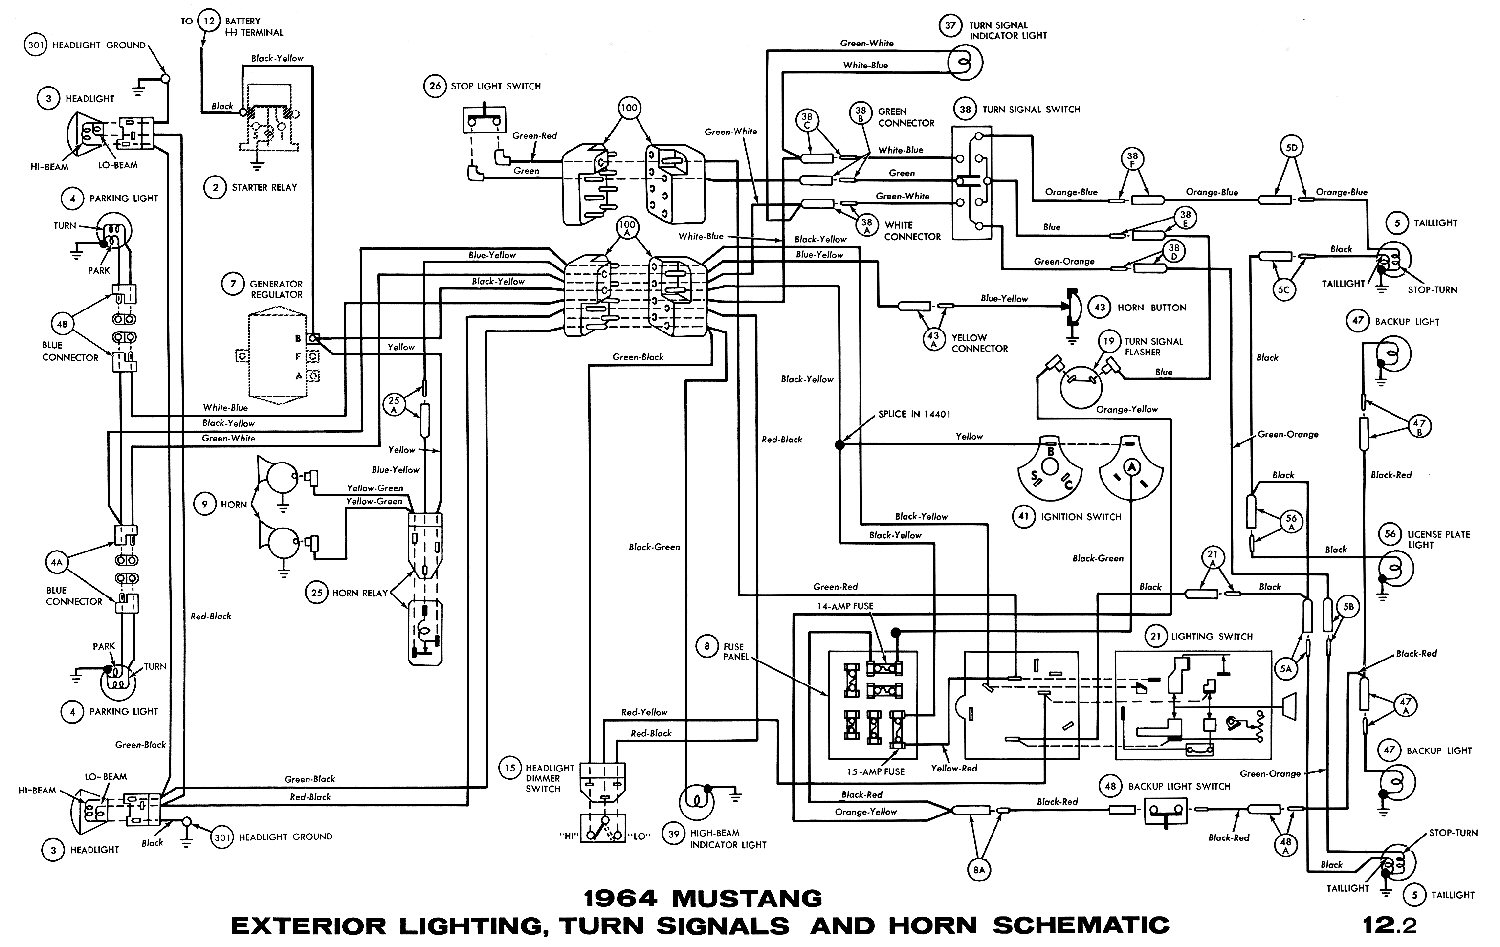 1964i 1969 mustang wiring diagram 2011 mustang wiring diagram \u2022 free  at webbmarketing.co